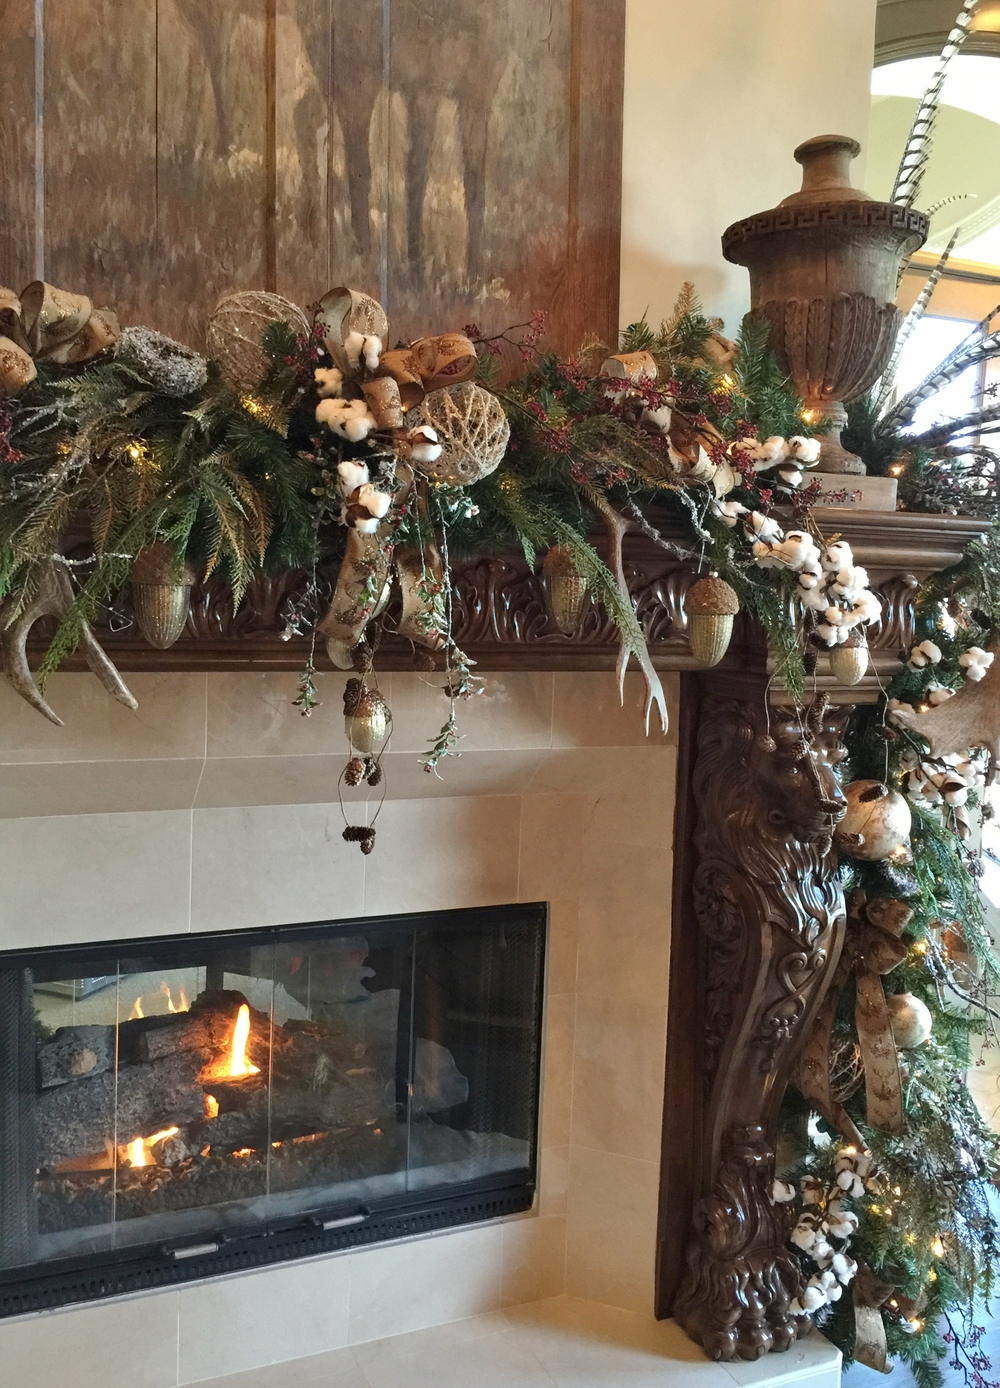 18 Of Houston 39 S Interior Designers Design 1 Asid Holiday Showhouse Tour Their Masterpiece